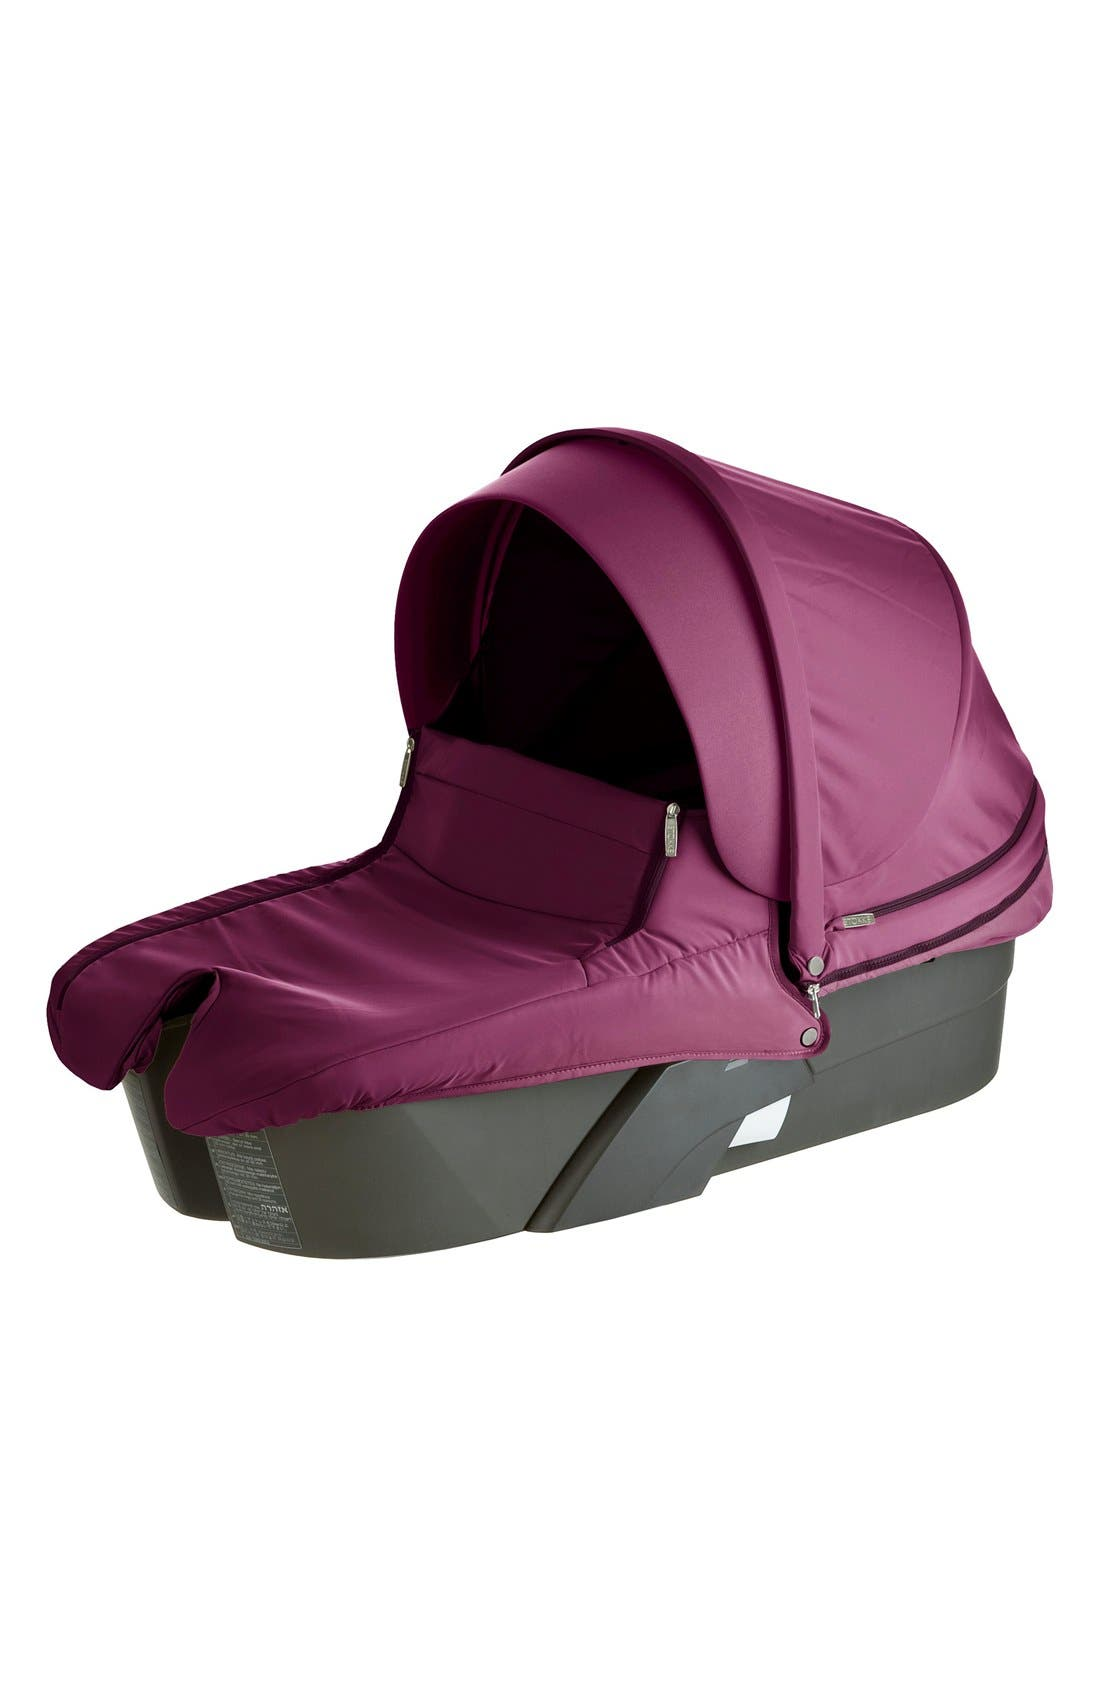 Alternate Image 1 Selected - Stokke 'Xplory®' Stroller Carry Cot